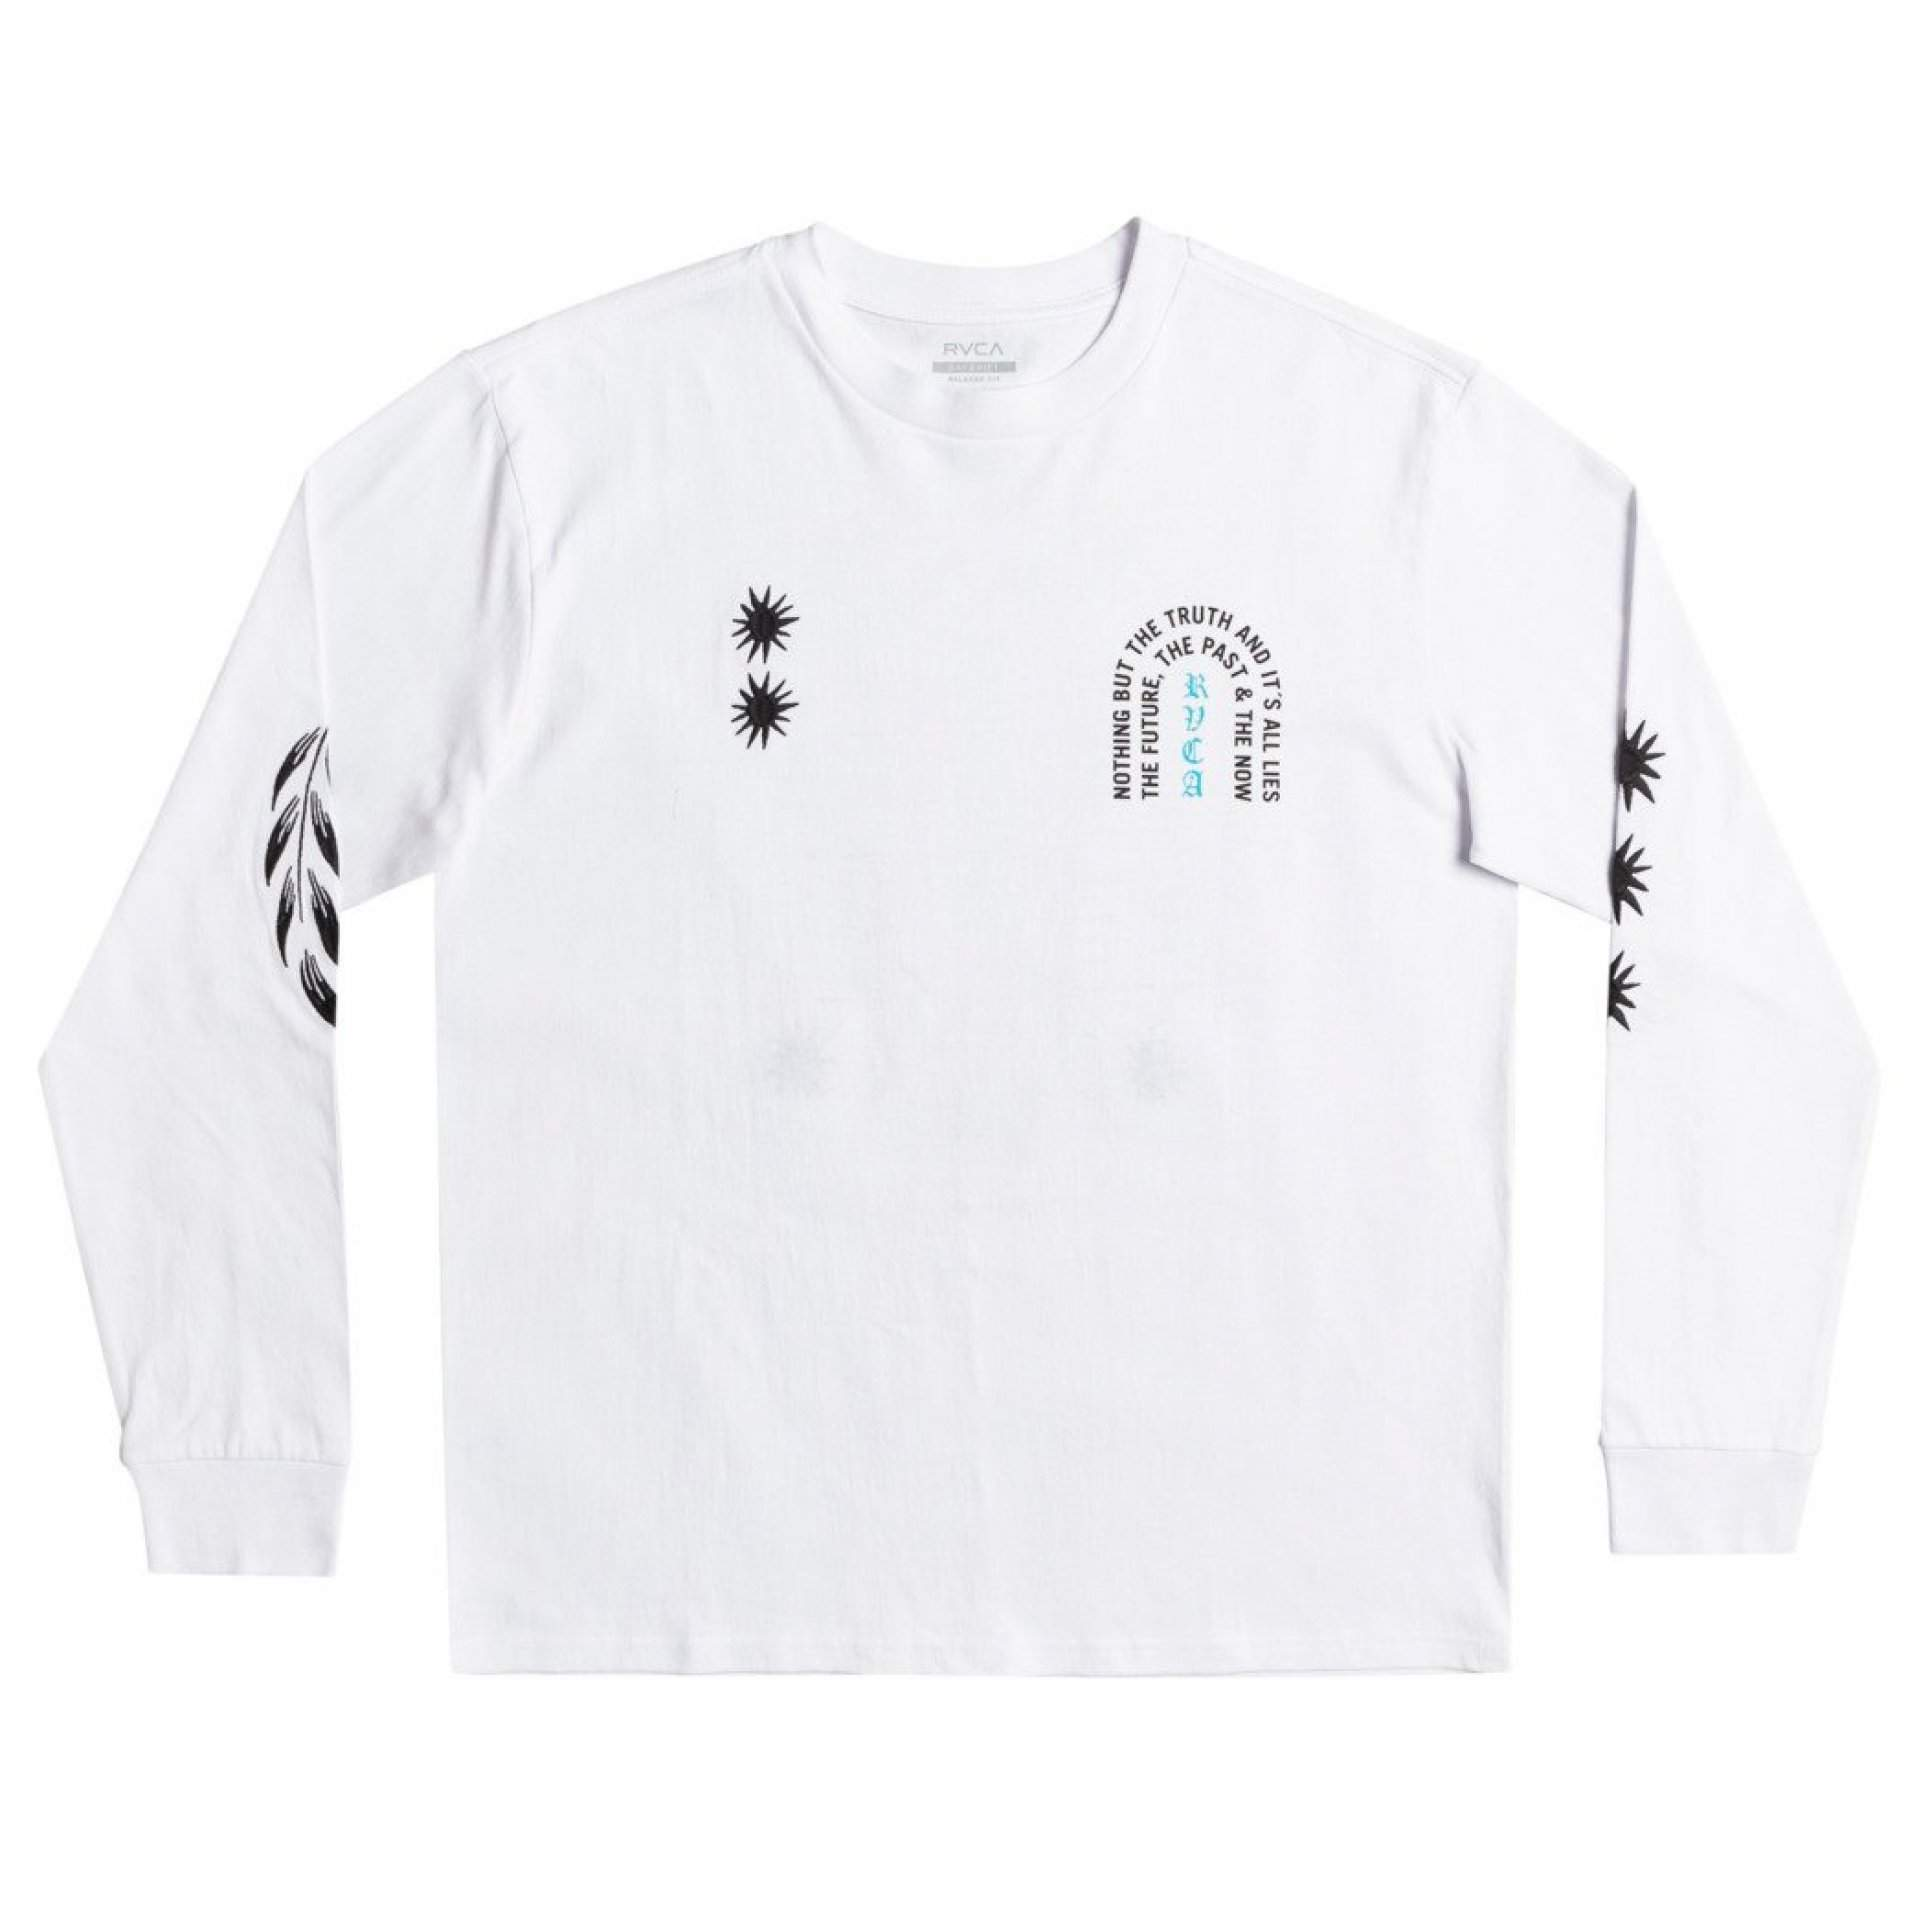 LONGSLEEVE RVCA TRUTH AND LIES WHITE